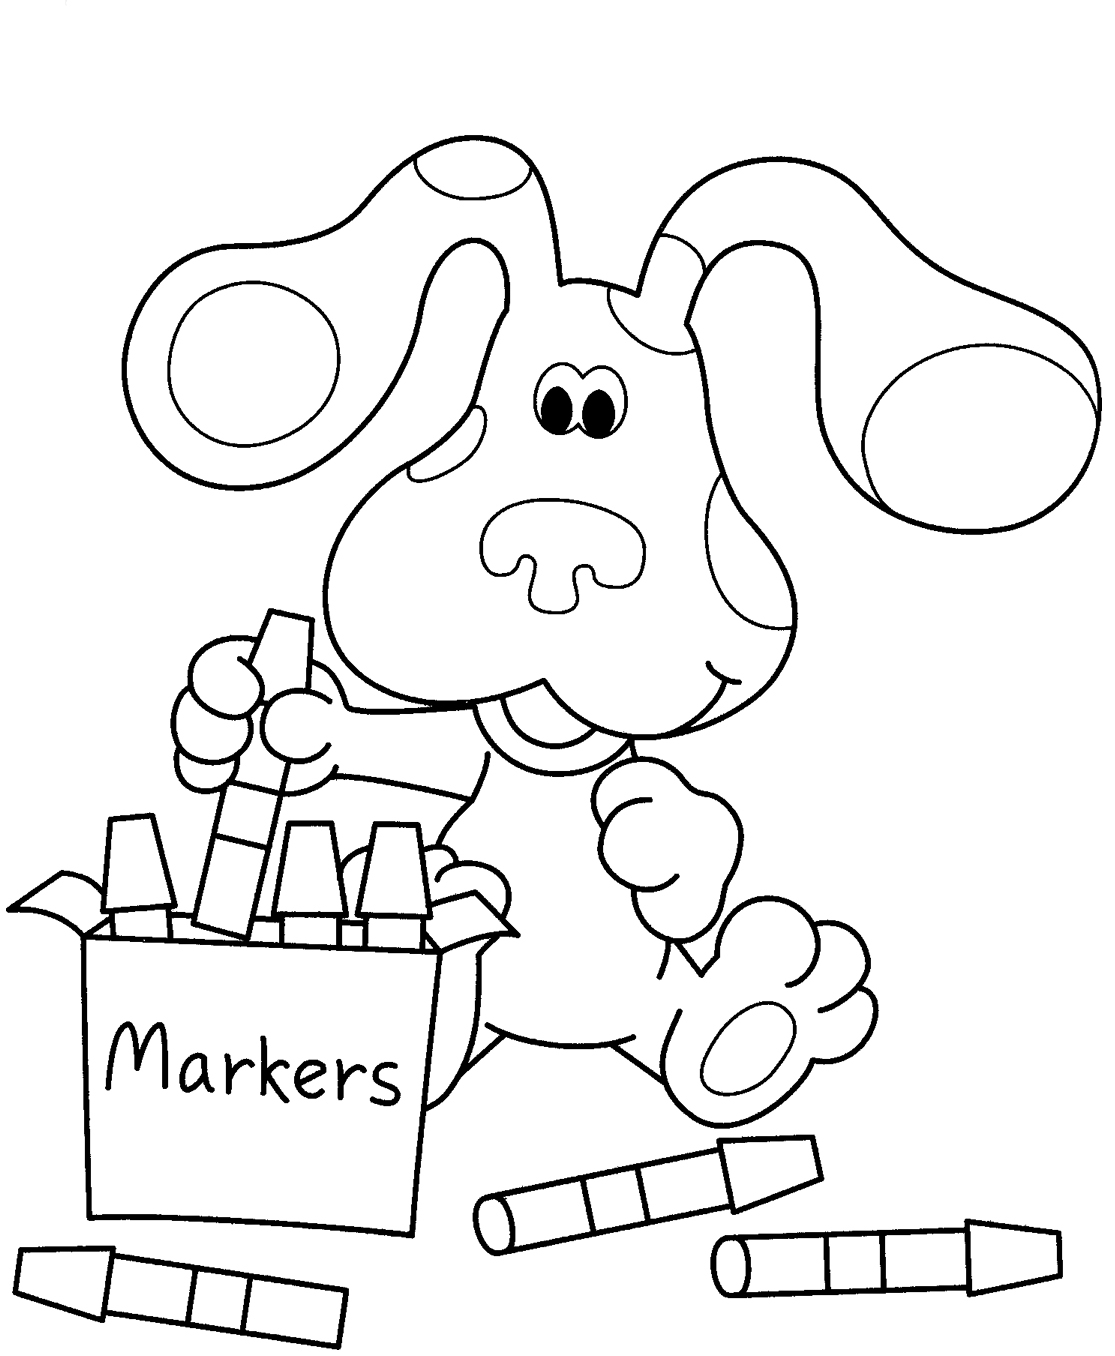 Free printable blues clues coloring pages for kids for Wallykazam coloring pages